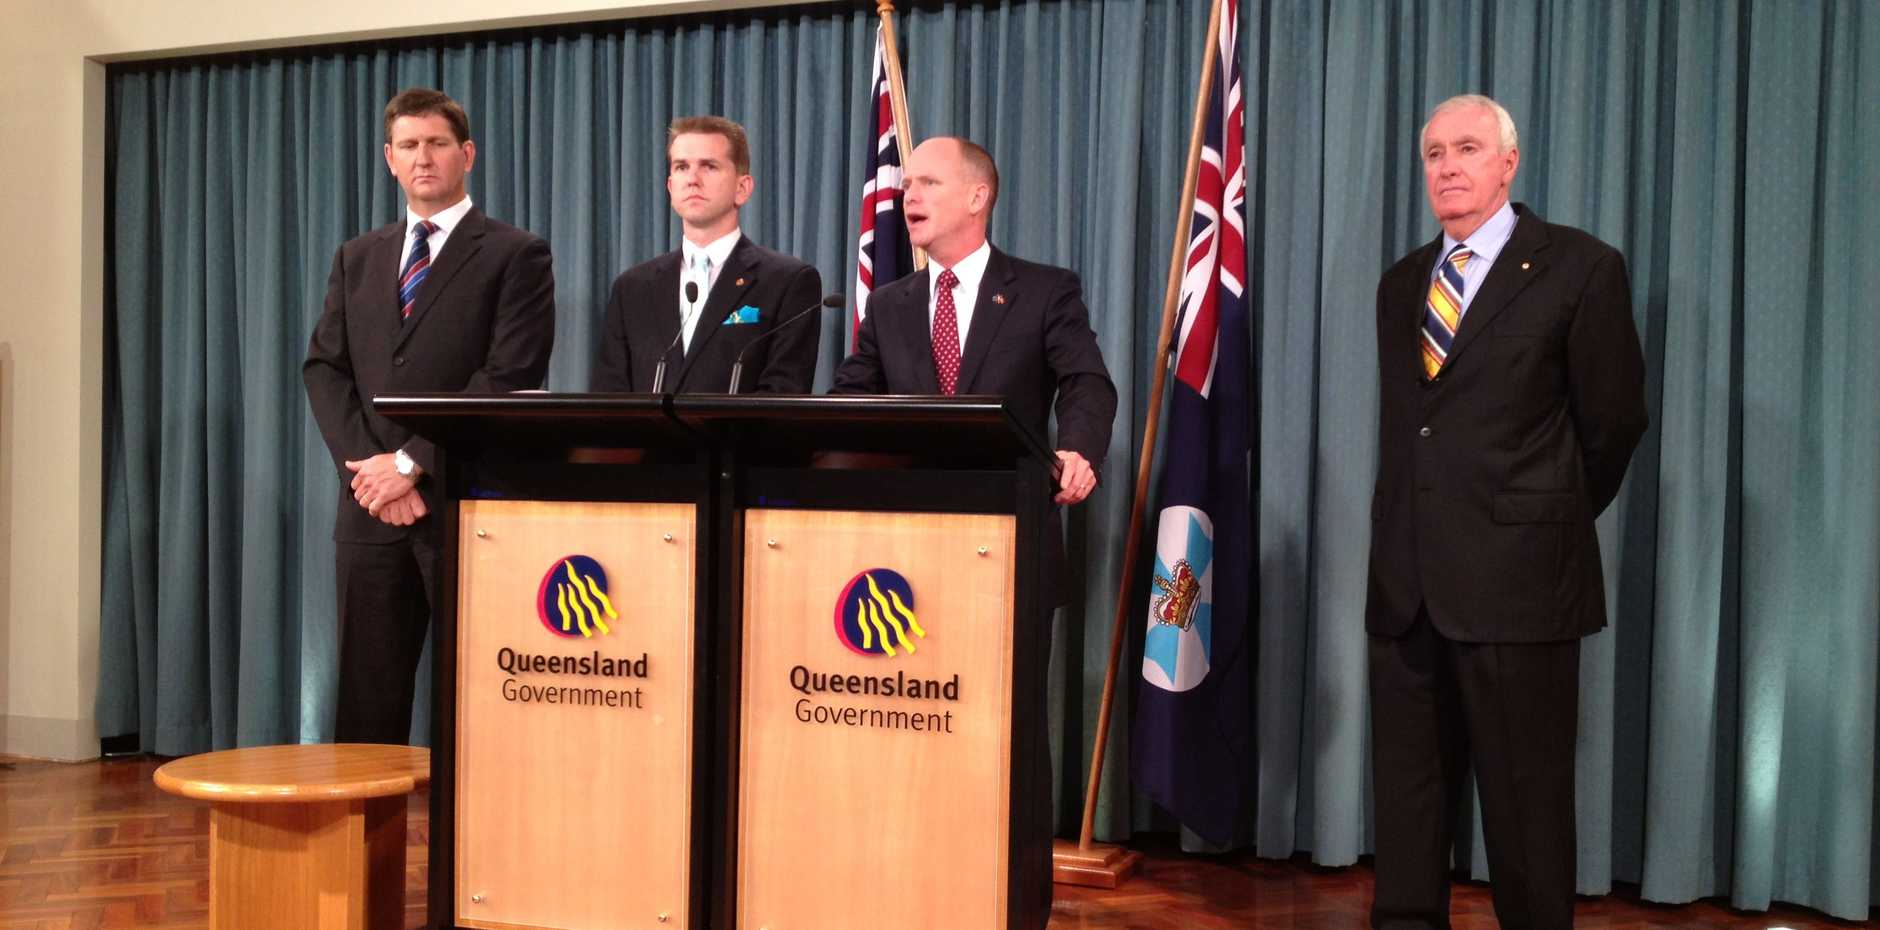 Queensland Health Minister Lawrence Springborg (L), Attorney-General Jarrod Bleijie and retired judge Richard Chesterman (Far R) are present while Premier Campbell Newman announces details concerning the payroll inquiry.